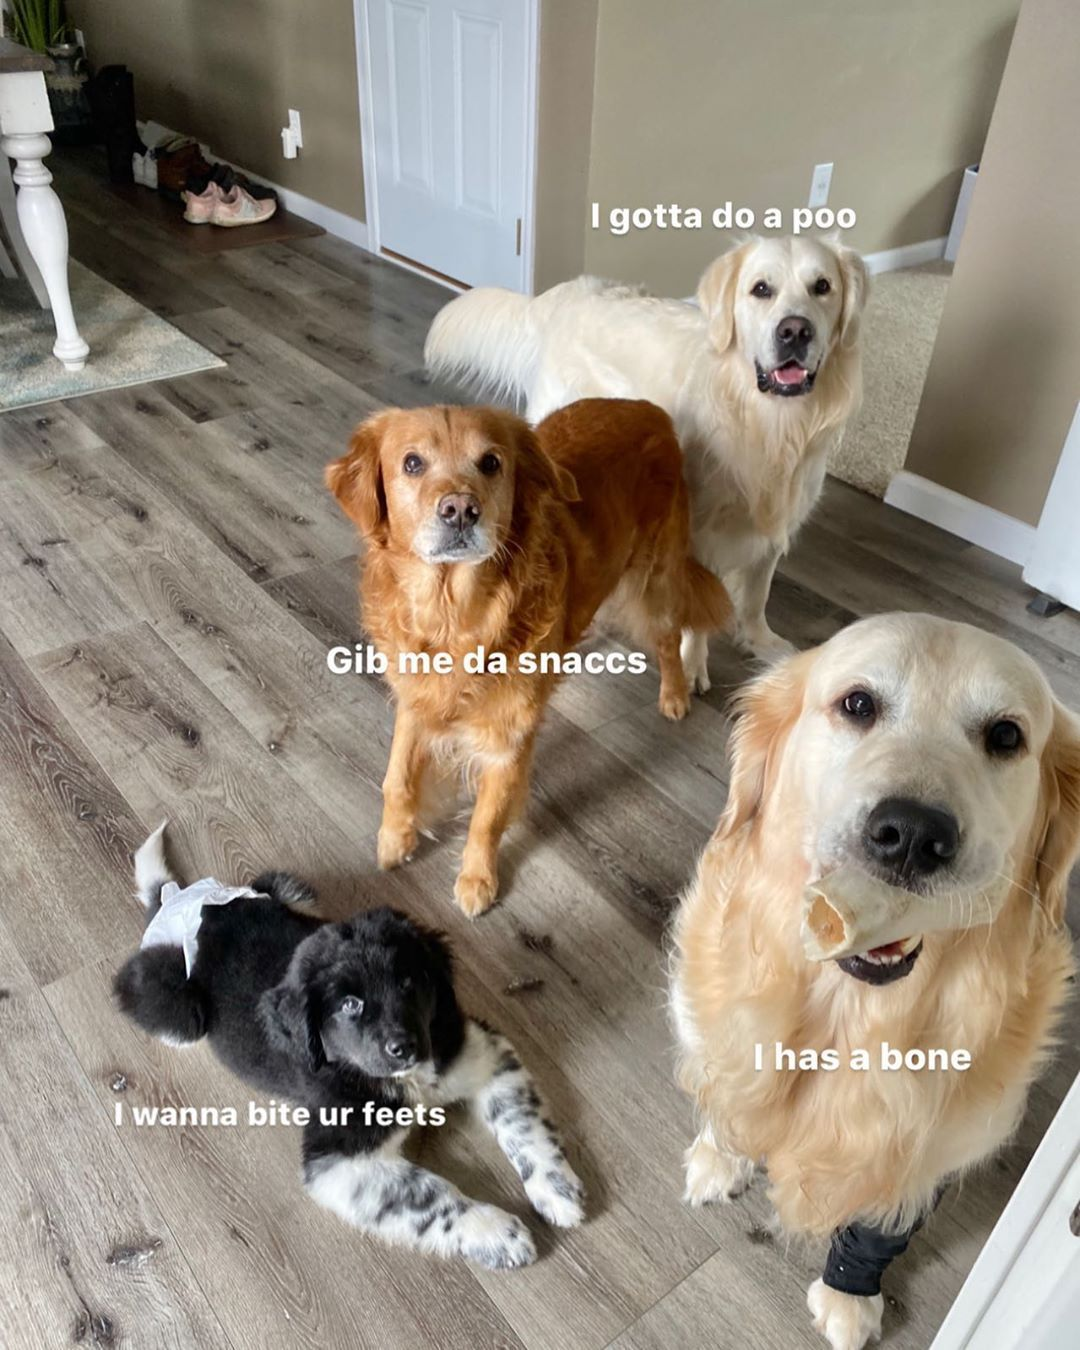 Charlie The Golden On Instagram My Dogs In A Nutshell Can We Appreciate The Fact I Got All 4 Dogs In One Pic And All Looking A Cute Dogs Dogs Cute Cat